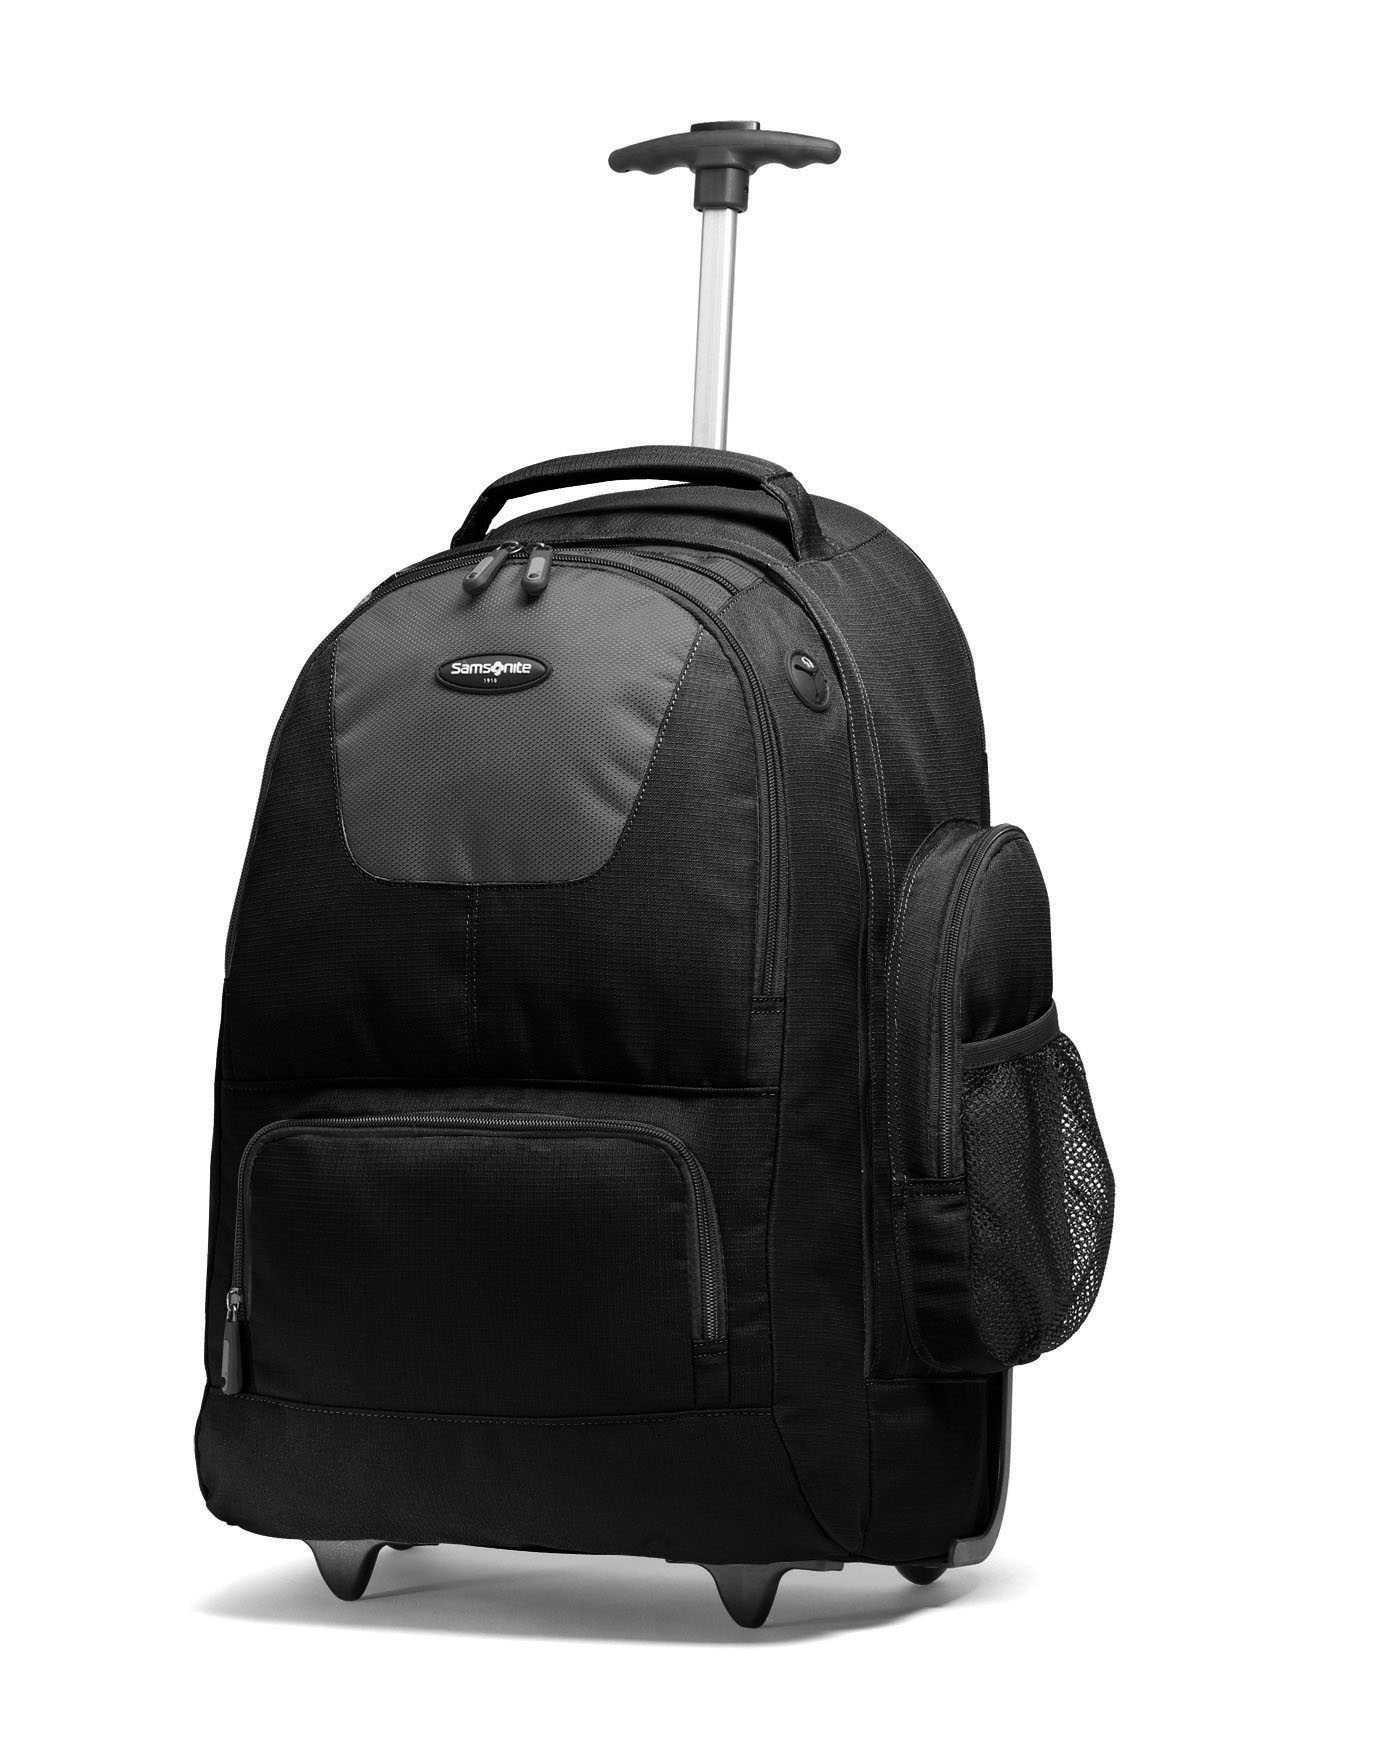 Swiss Gear Rolling Backpack Y8jfexXL